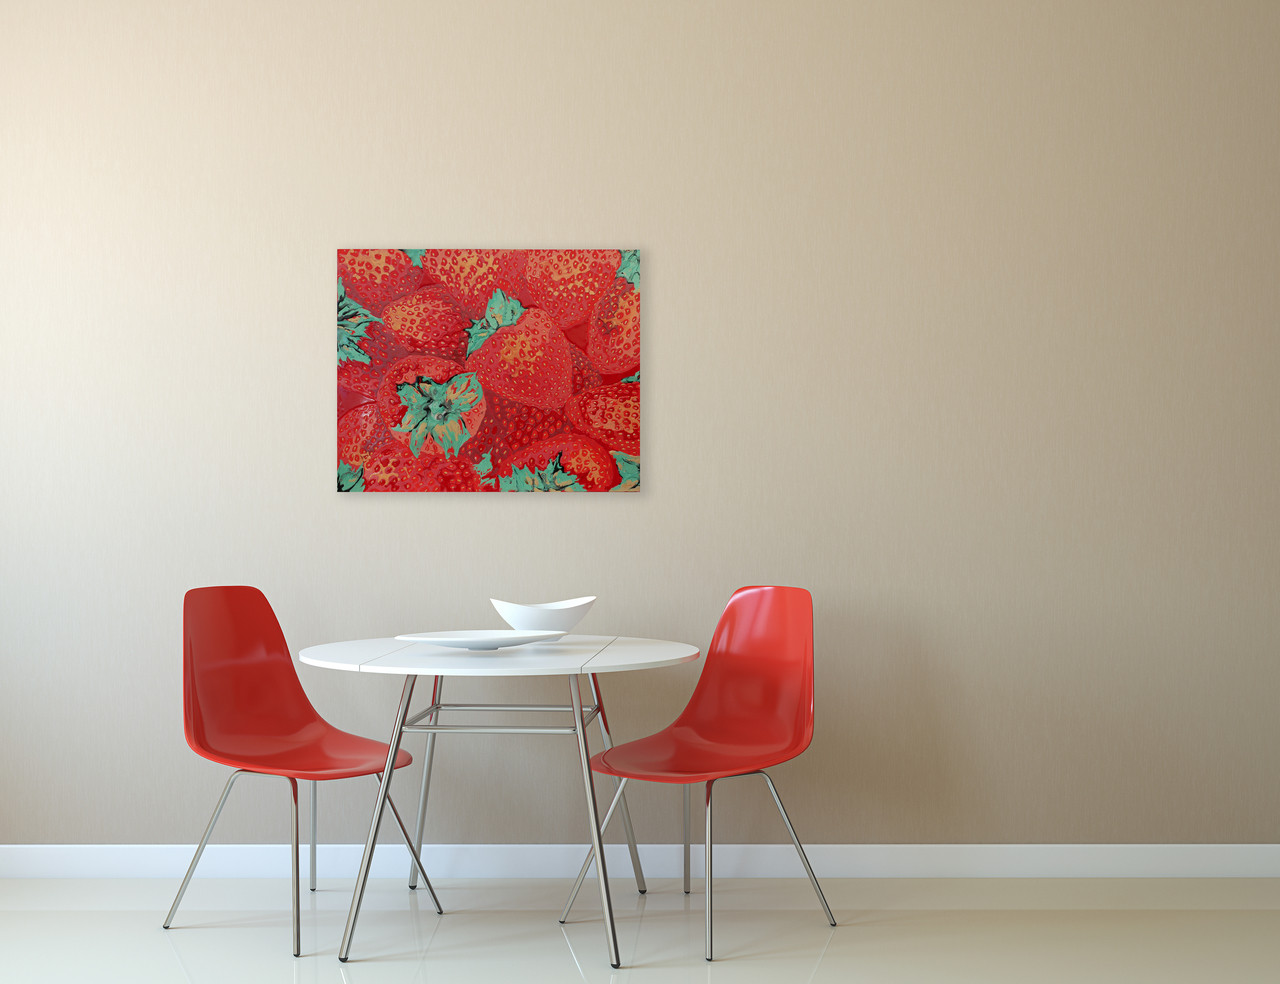 Red food painting for kitchen or breakfast bar